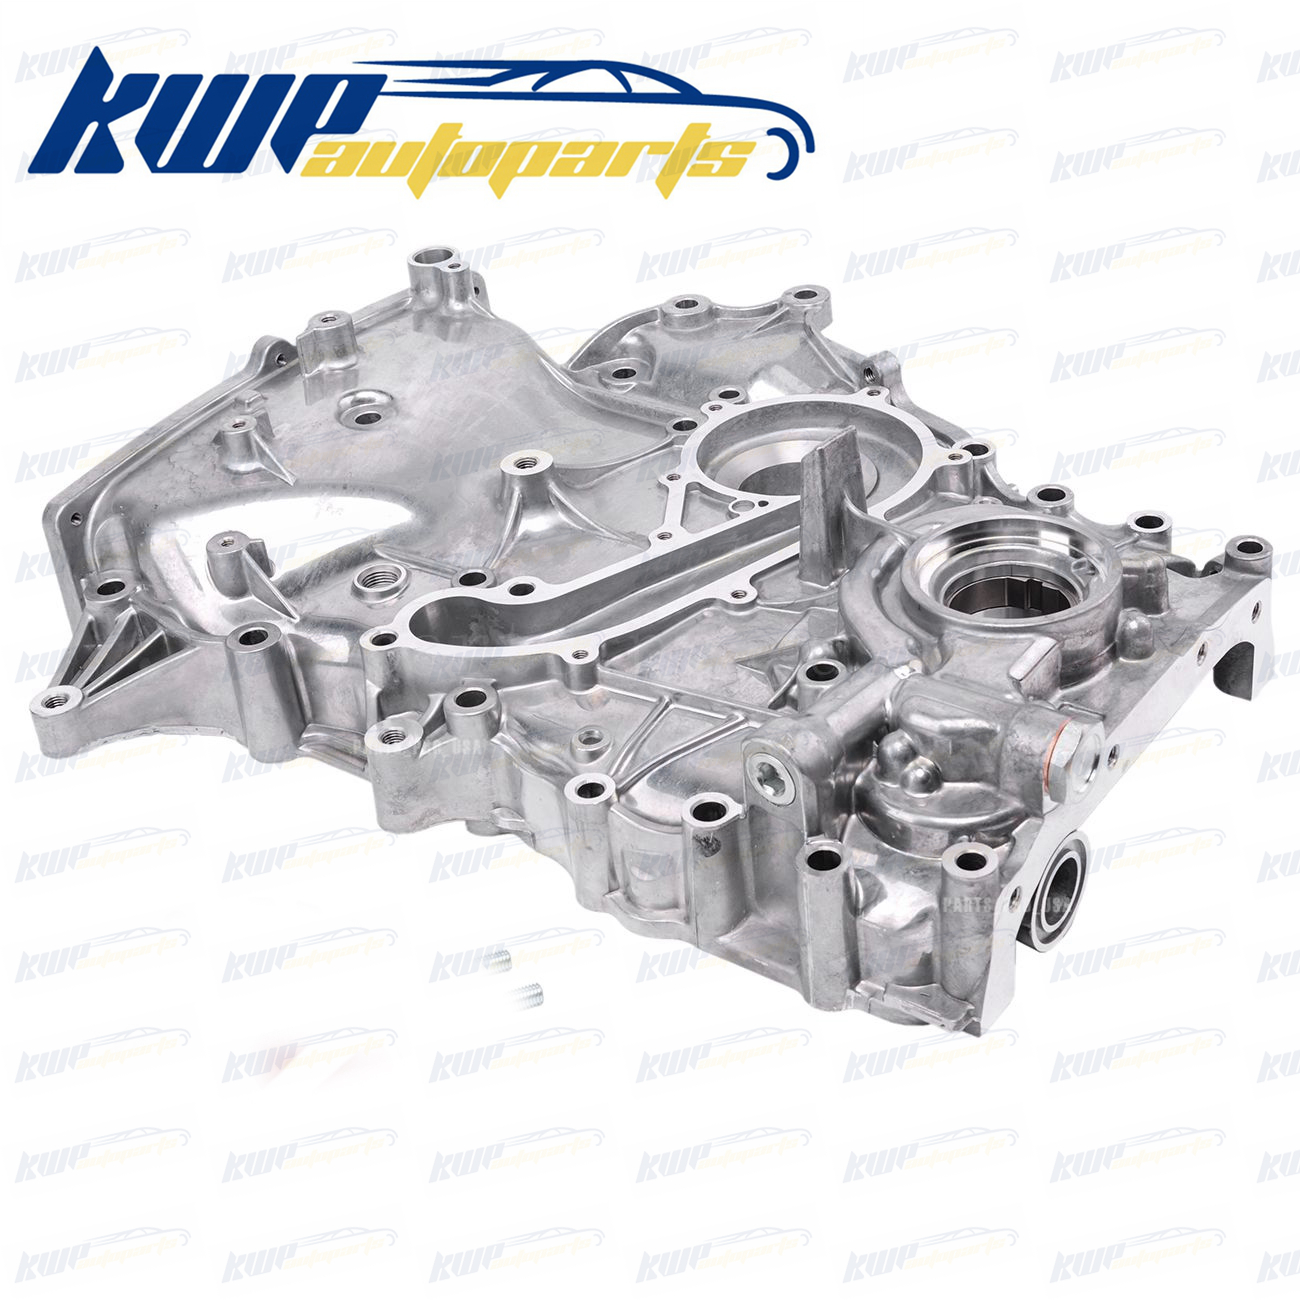 Buy Engine Timing Cover Toyota And Get Free Shipping On How 4y